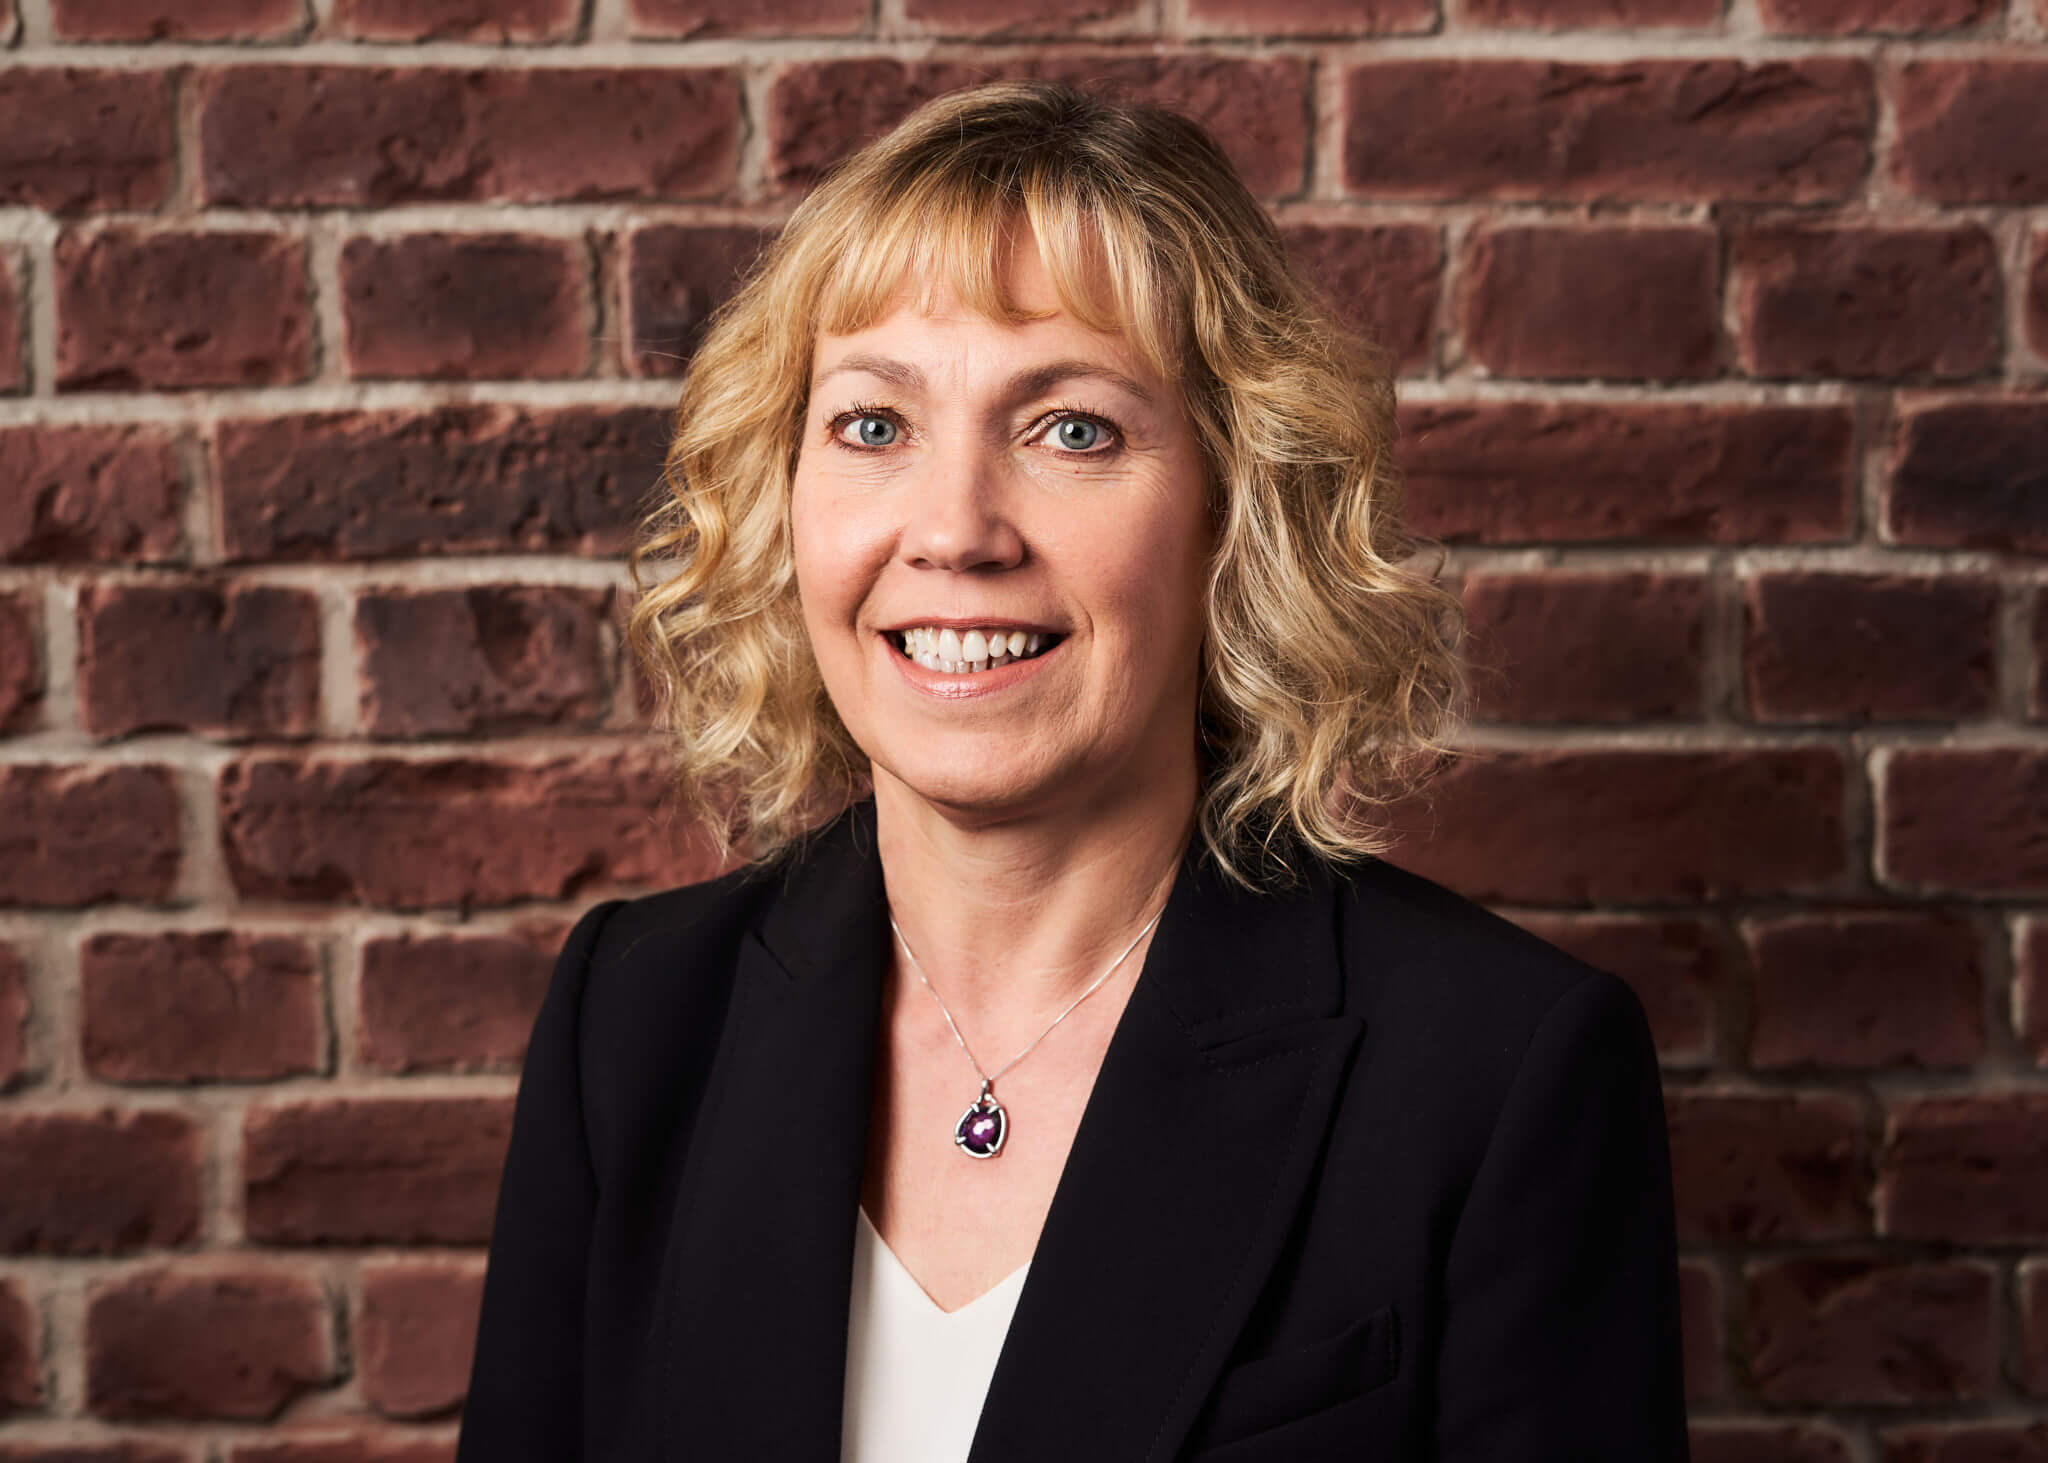 Janice Boucher, Managing Director